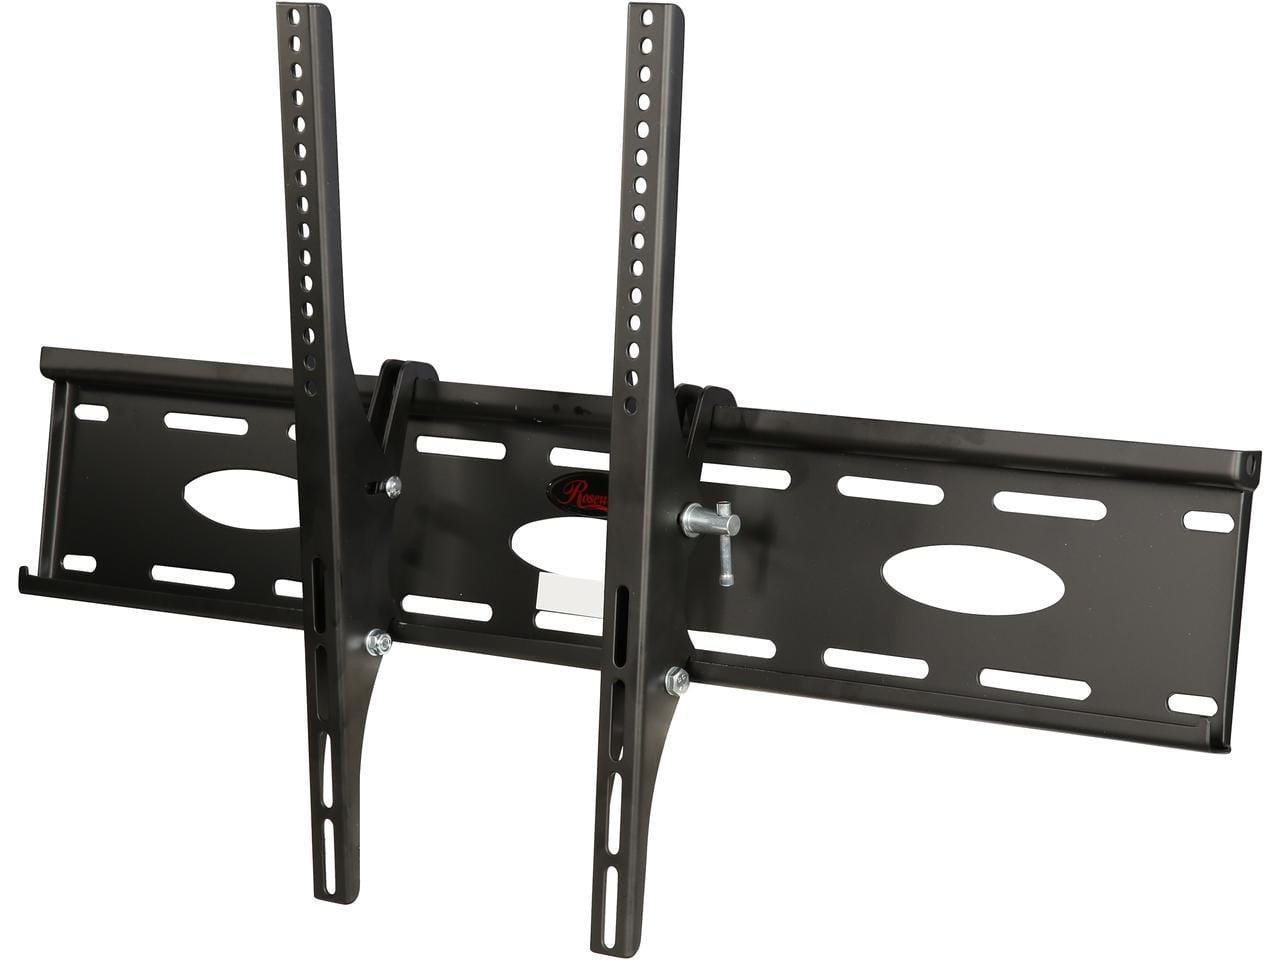 "Rosewill LCD / LED TV Tilting Wall Mount - For 37"" - 65"" Displays, Supports Up to 165 lbs for $9.99 AR"